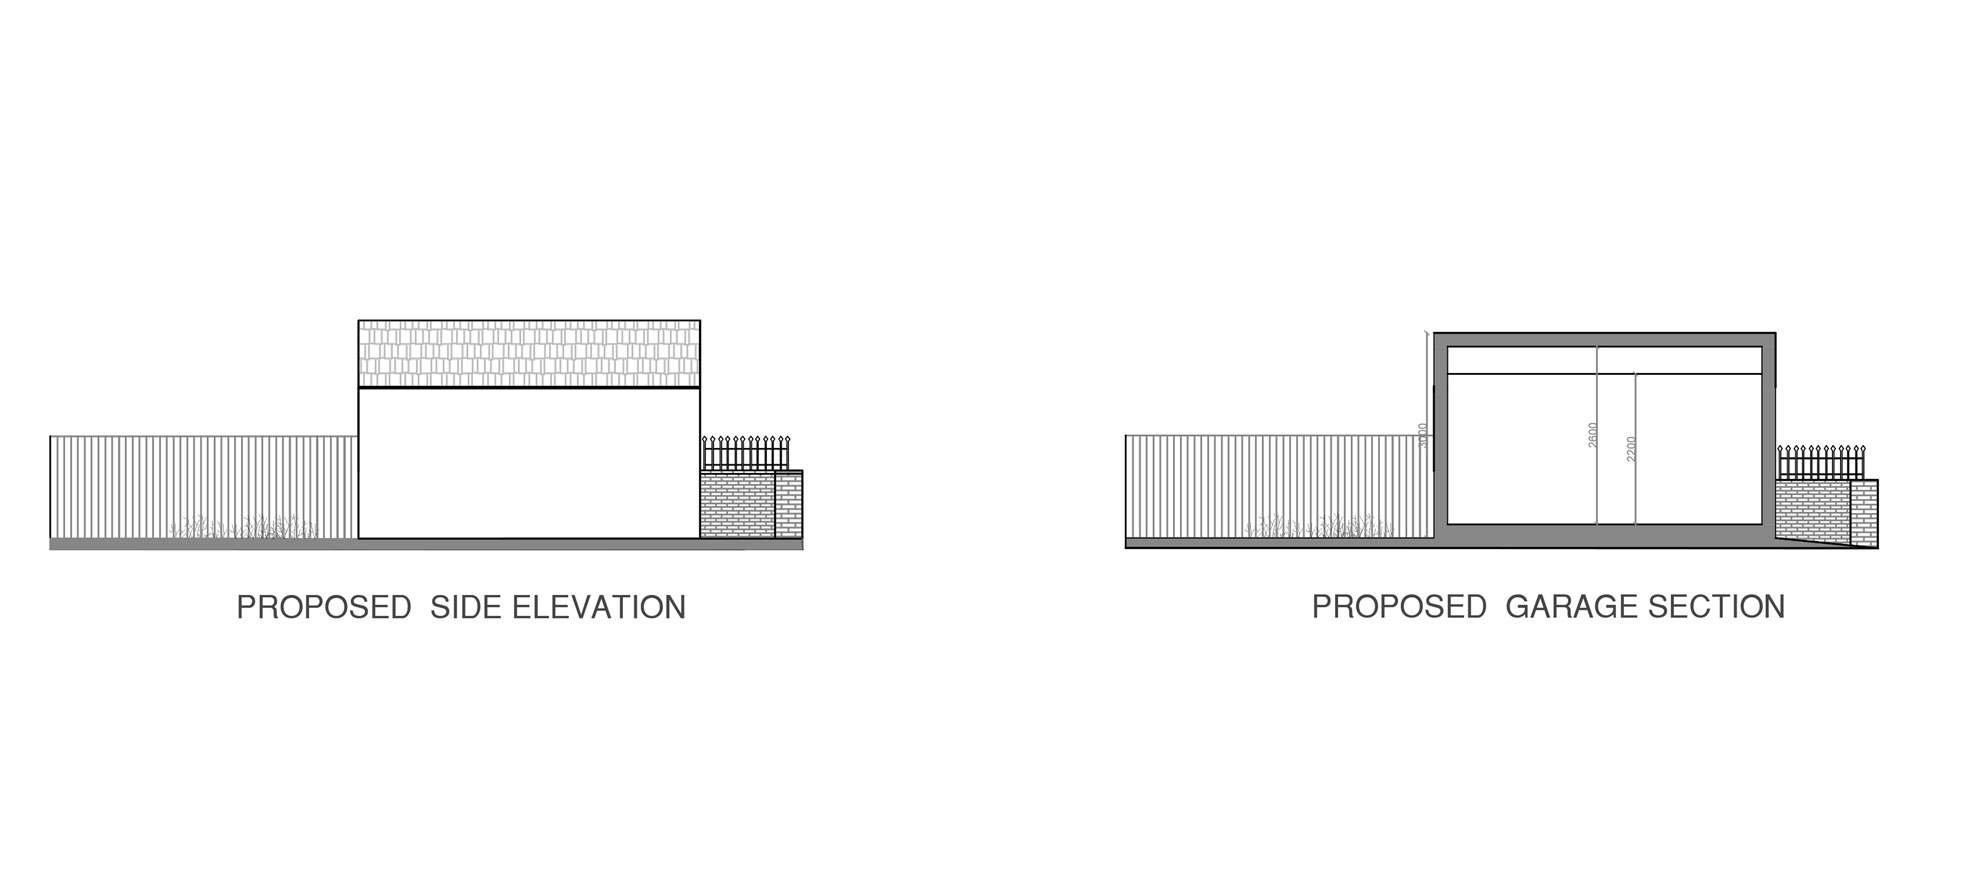 Roof-Terrace-&-Garage-conversion-in-Croydon-Proposed-Garage